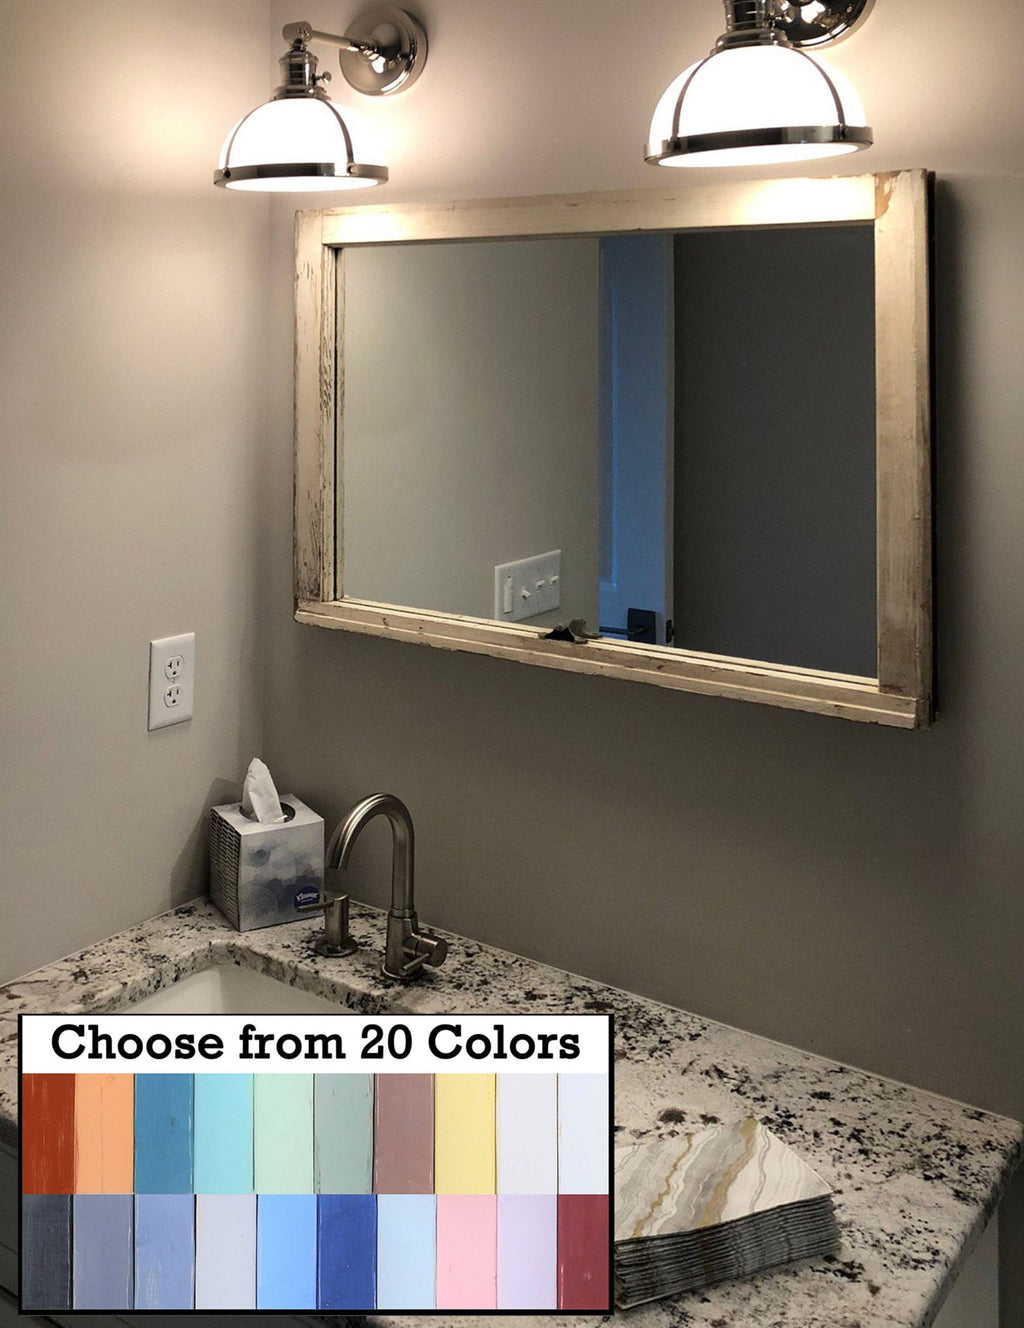 Mirror Wall Decor, Reclaimed Wood Window Mirror – Single Pane Frame – Decorative Mirror – Vanity Mirror – 20 Colors - Renewed Decor & Storage